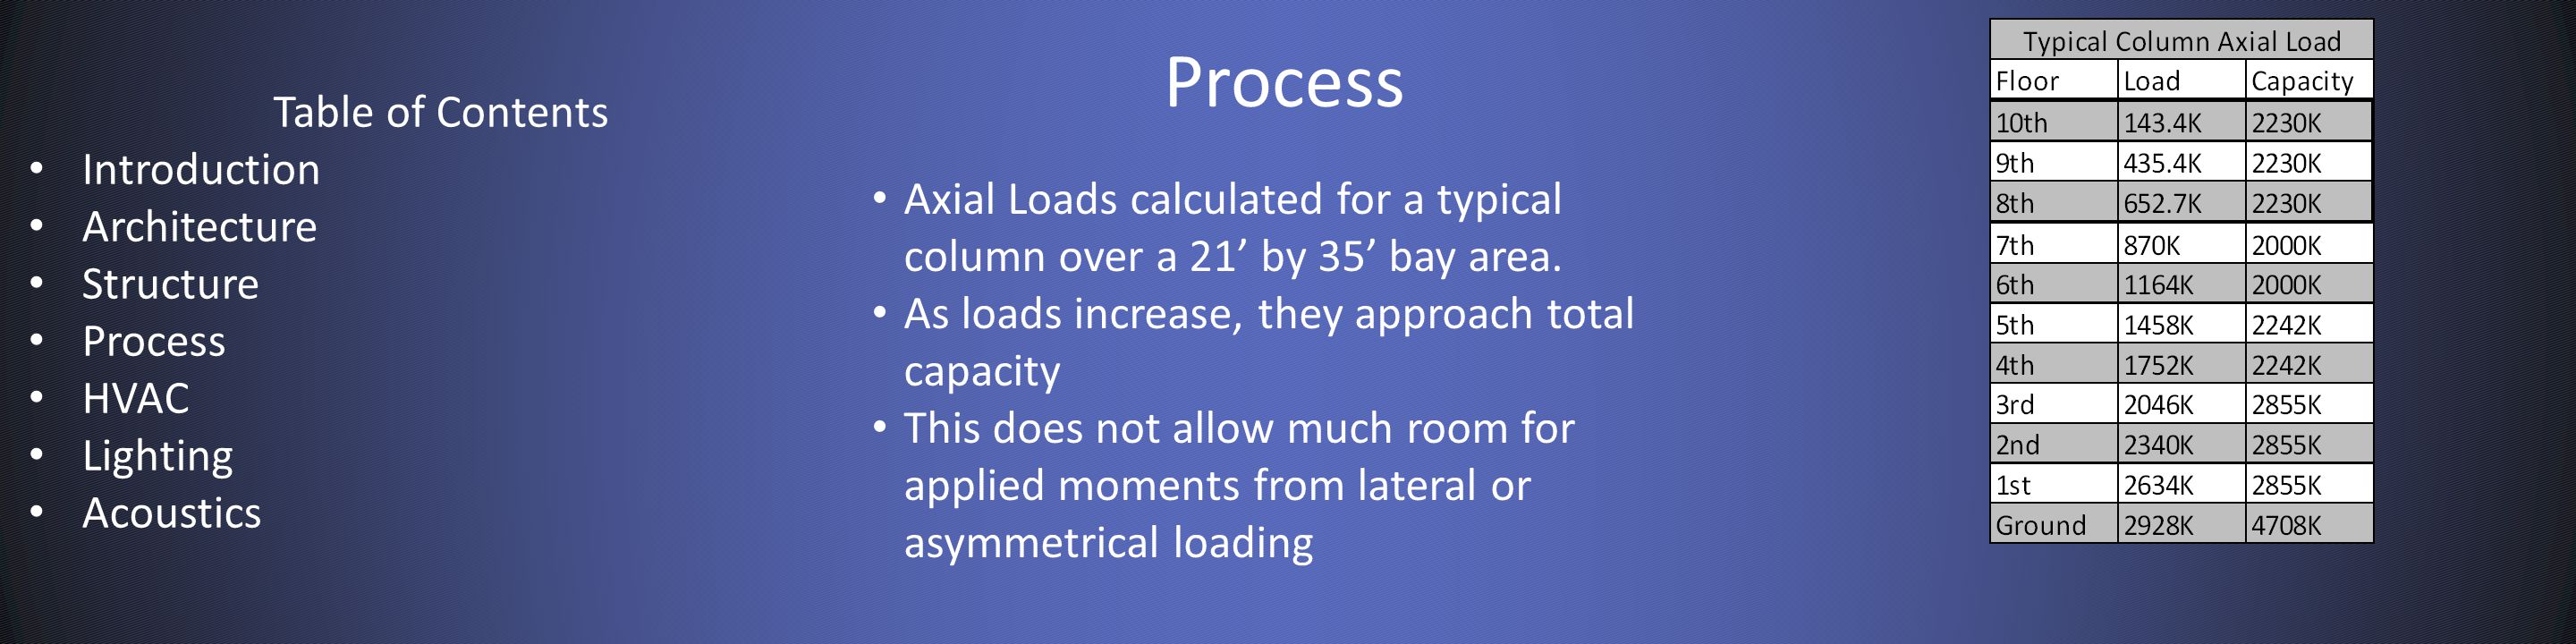 Process Axial Loads calculated for a typical column over a 21' by 35' bay area.